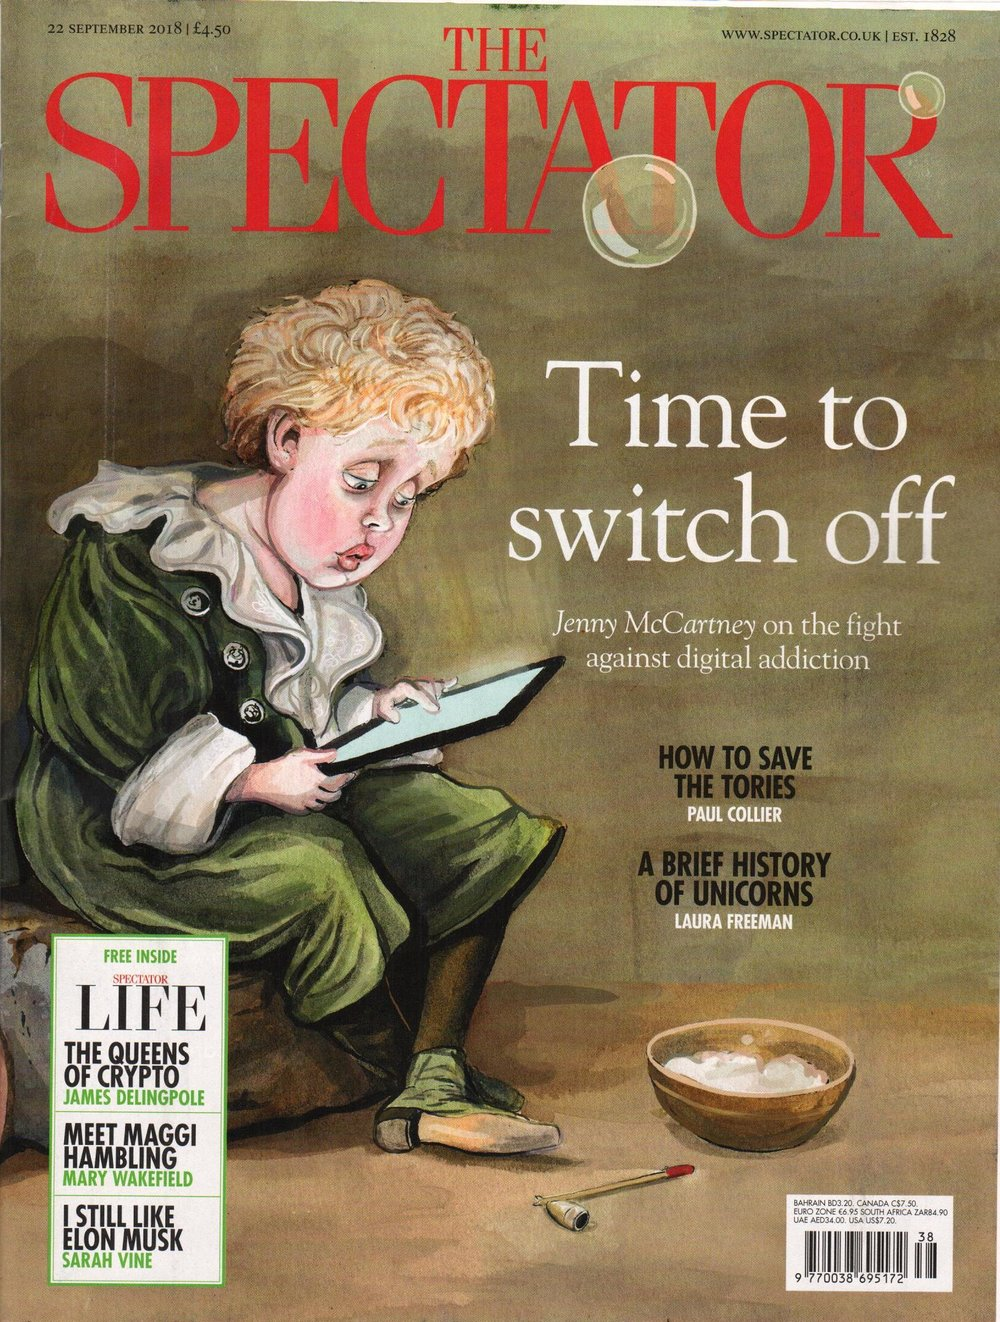 Spectator cover 22nd Sept.jpg